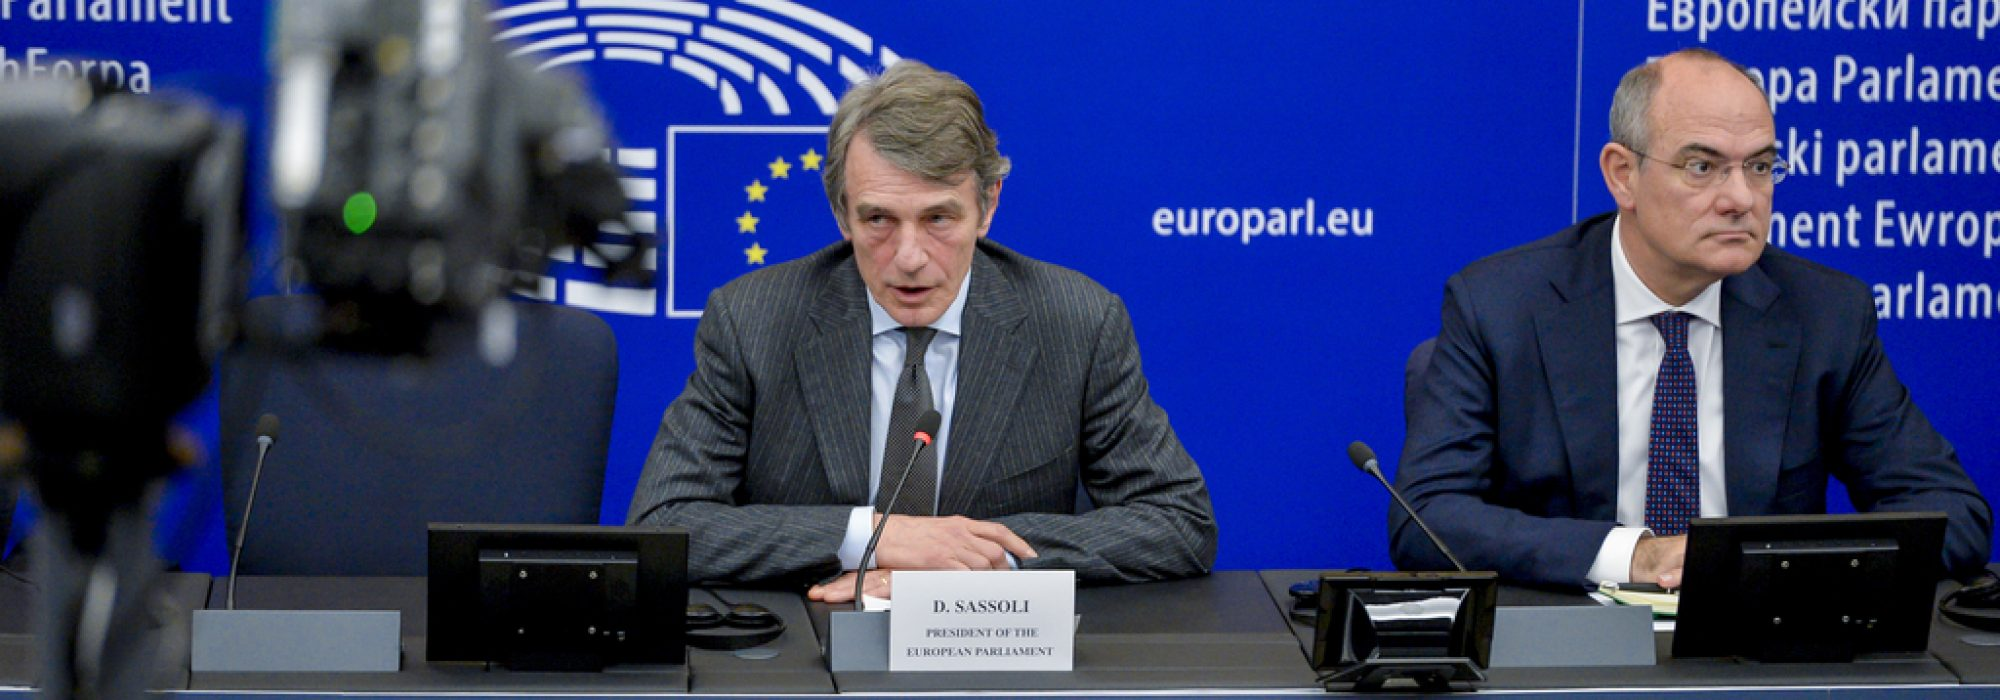 EP Press conference on the Multiannual Financial Framework 2021-2027 with David SASSOLI, EP President